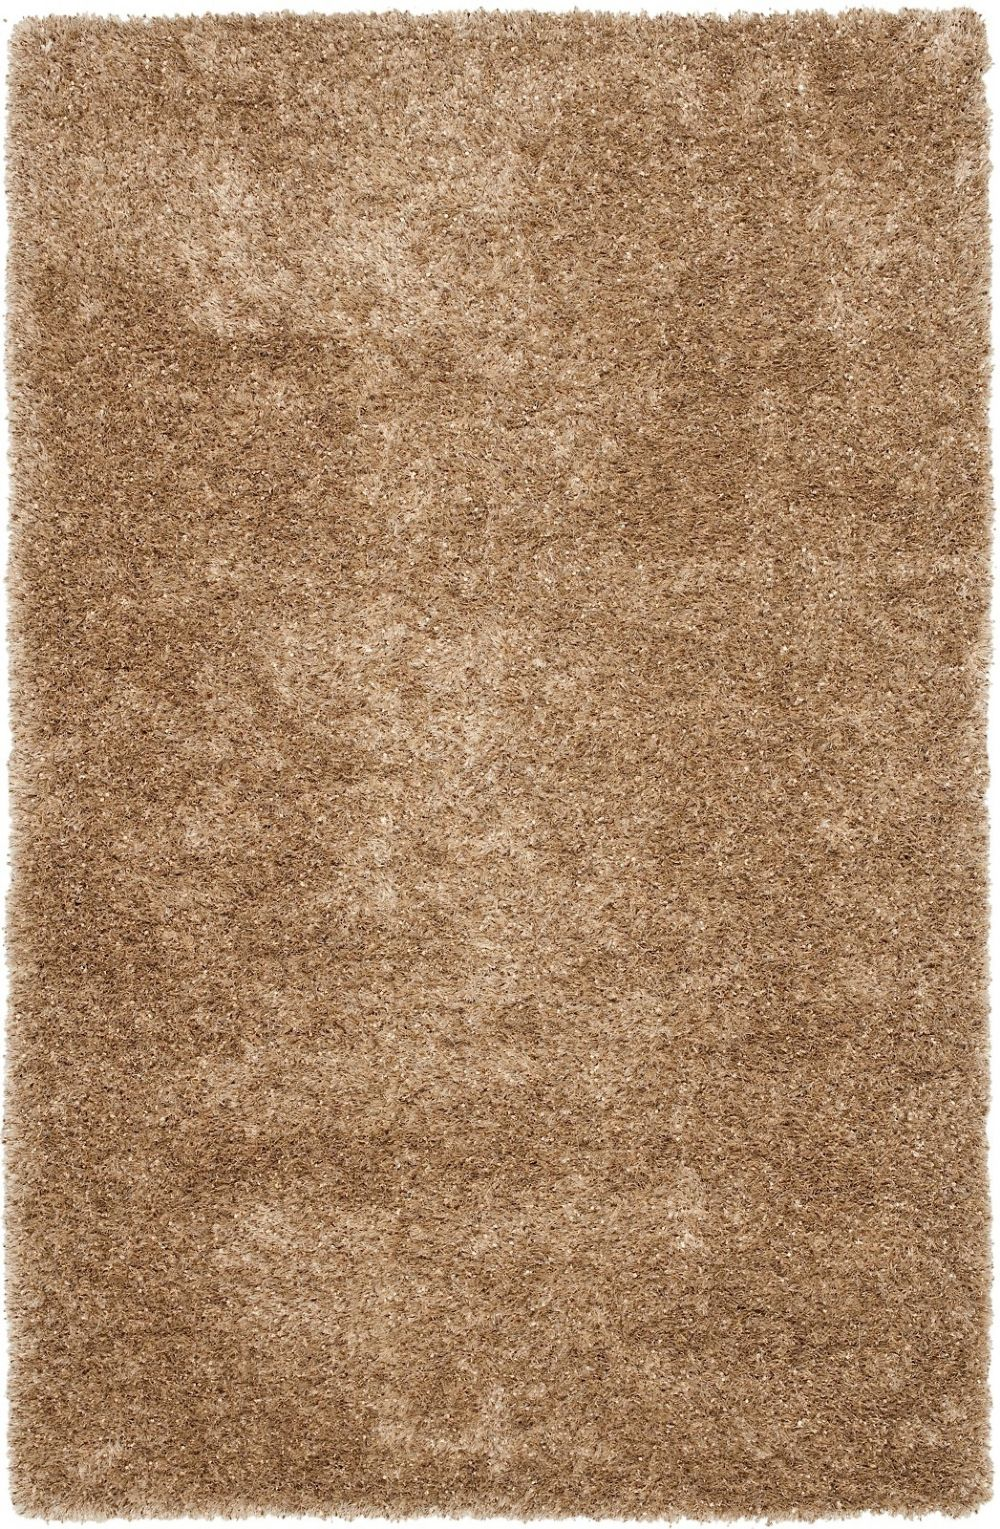 safavieh malibu shag shag area rug collection